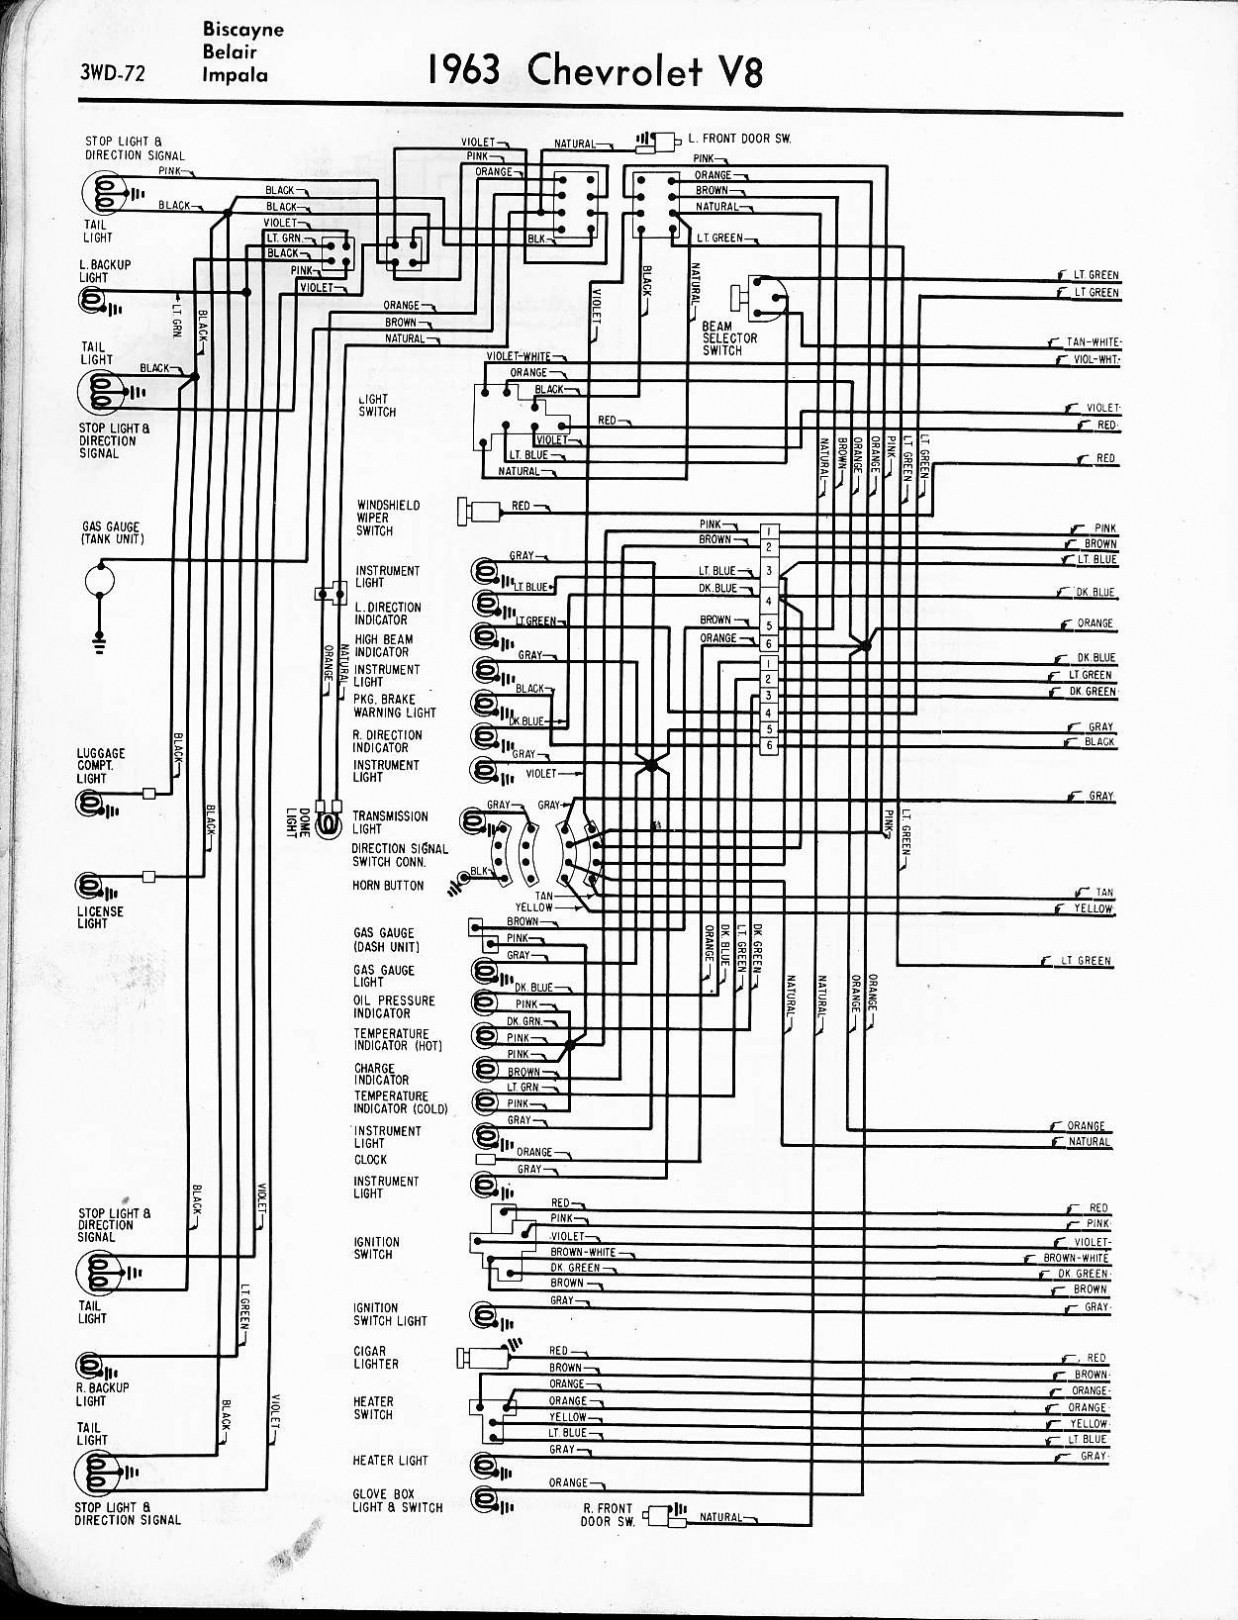 1963 Corvair Ignition Diagram Wiring Schematic Wiring Diagram Workstation Workstation Pasticceriagele It